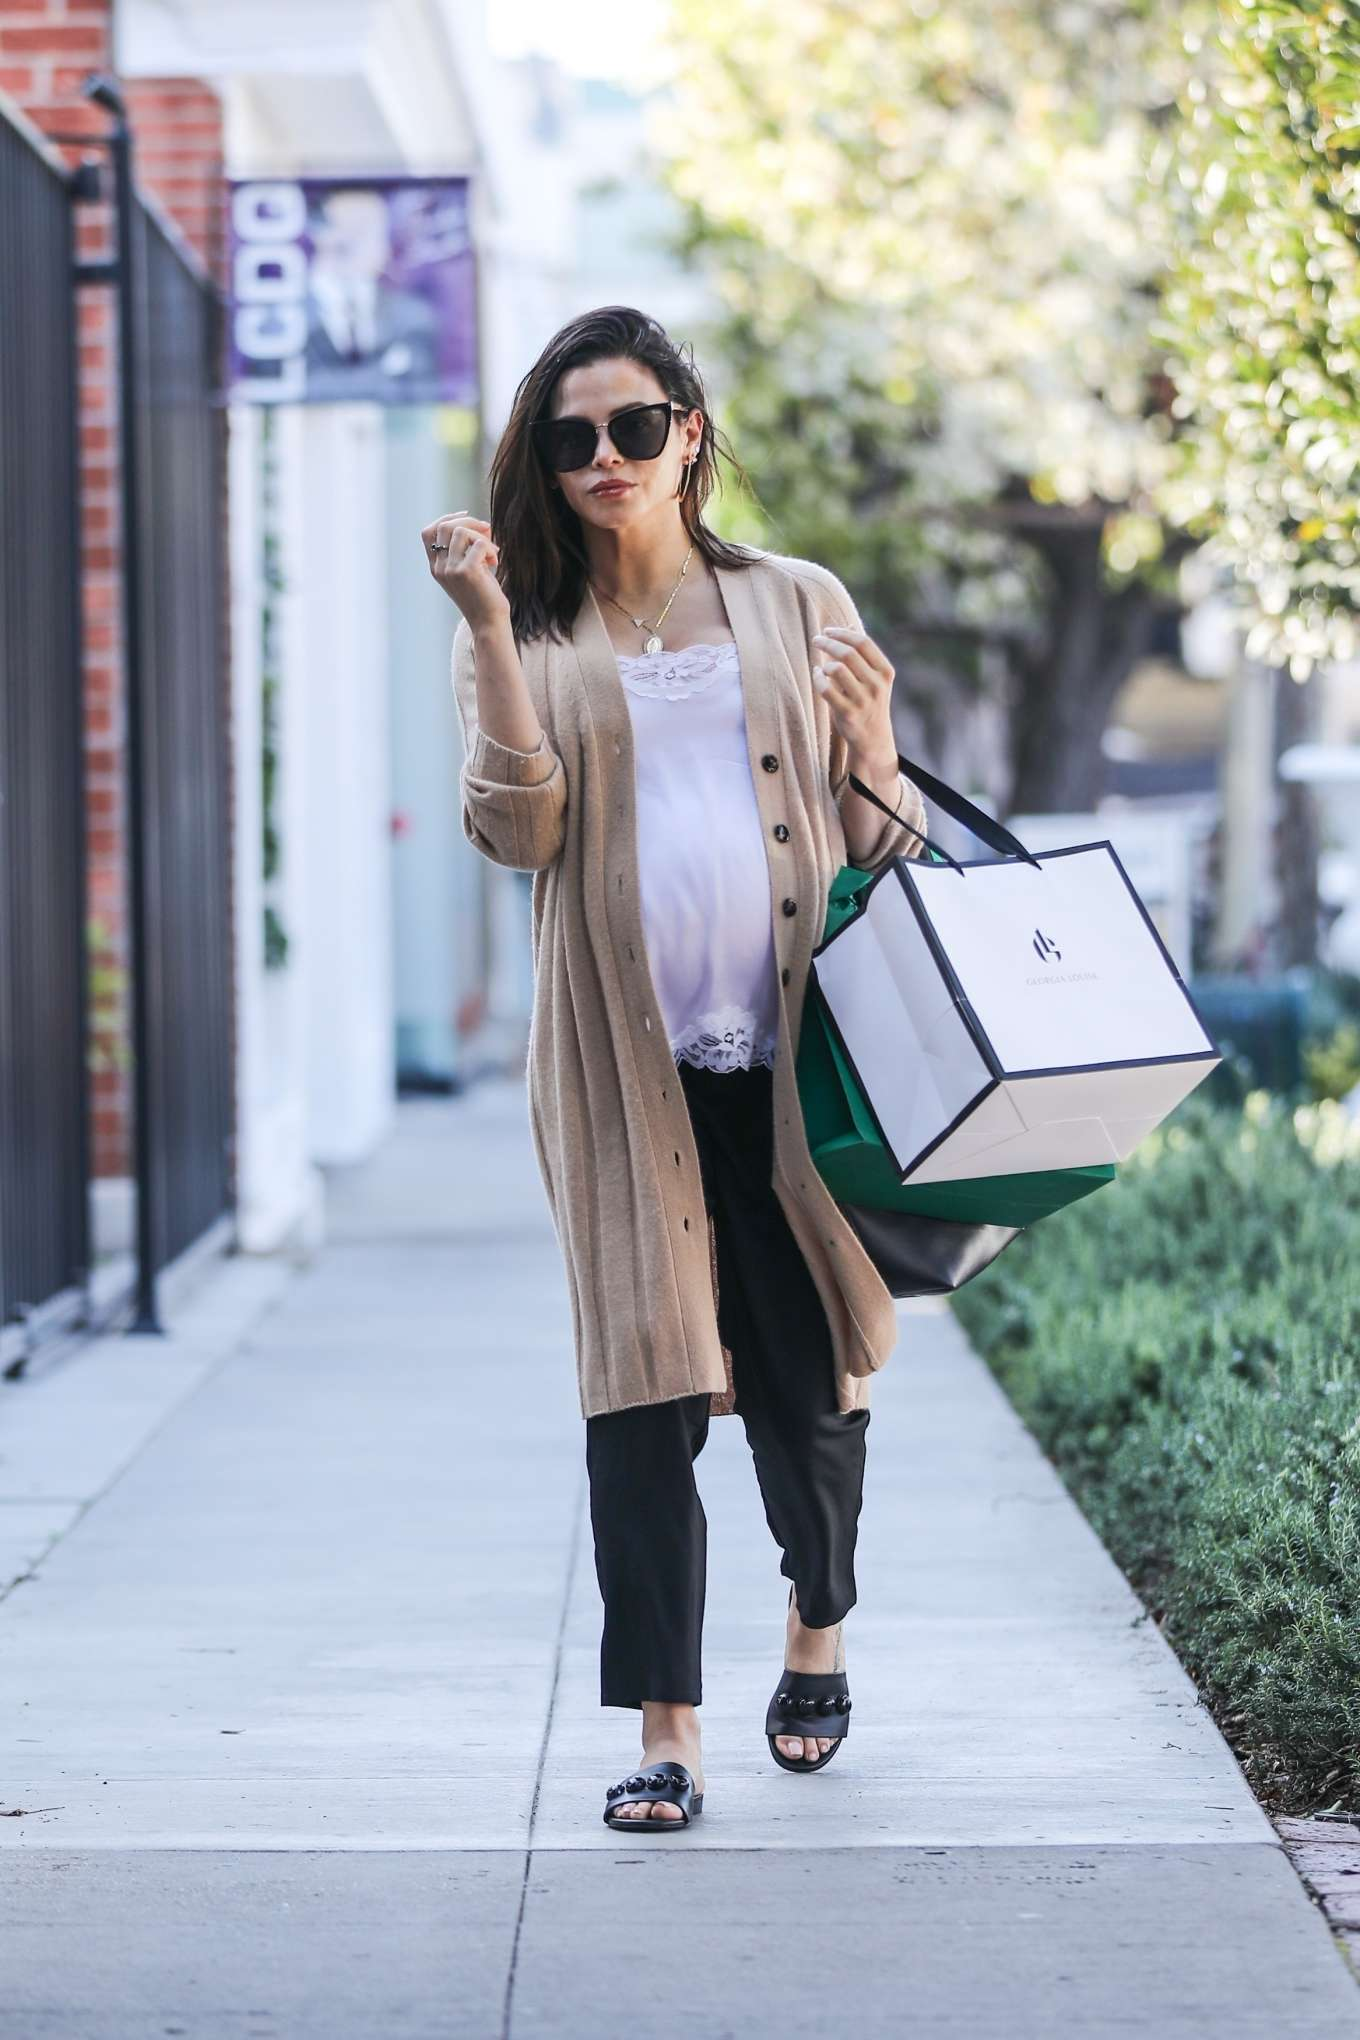 Jenna Dewan donning bow black open toe flats with square heel